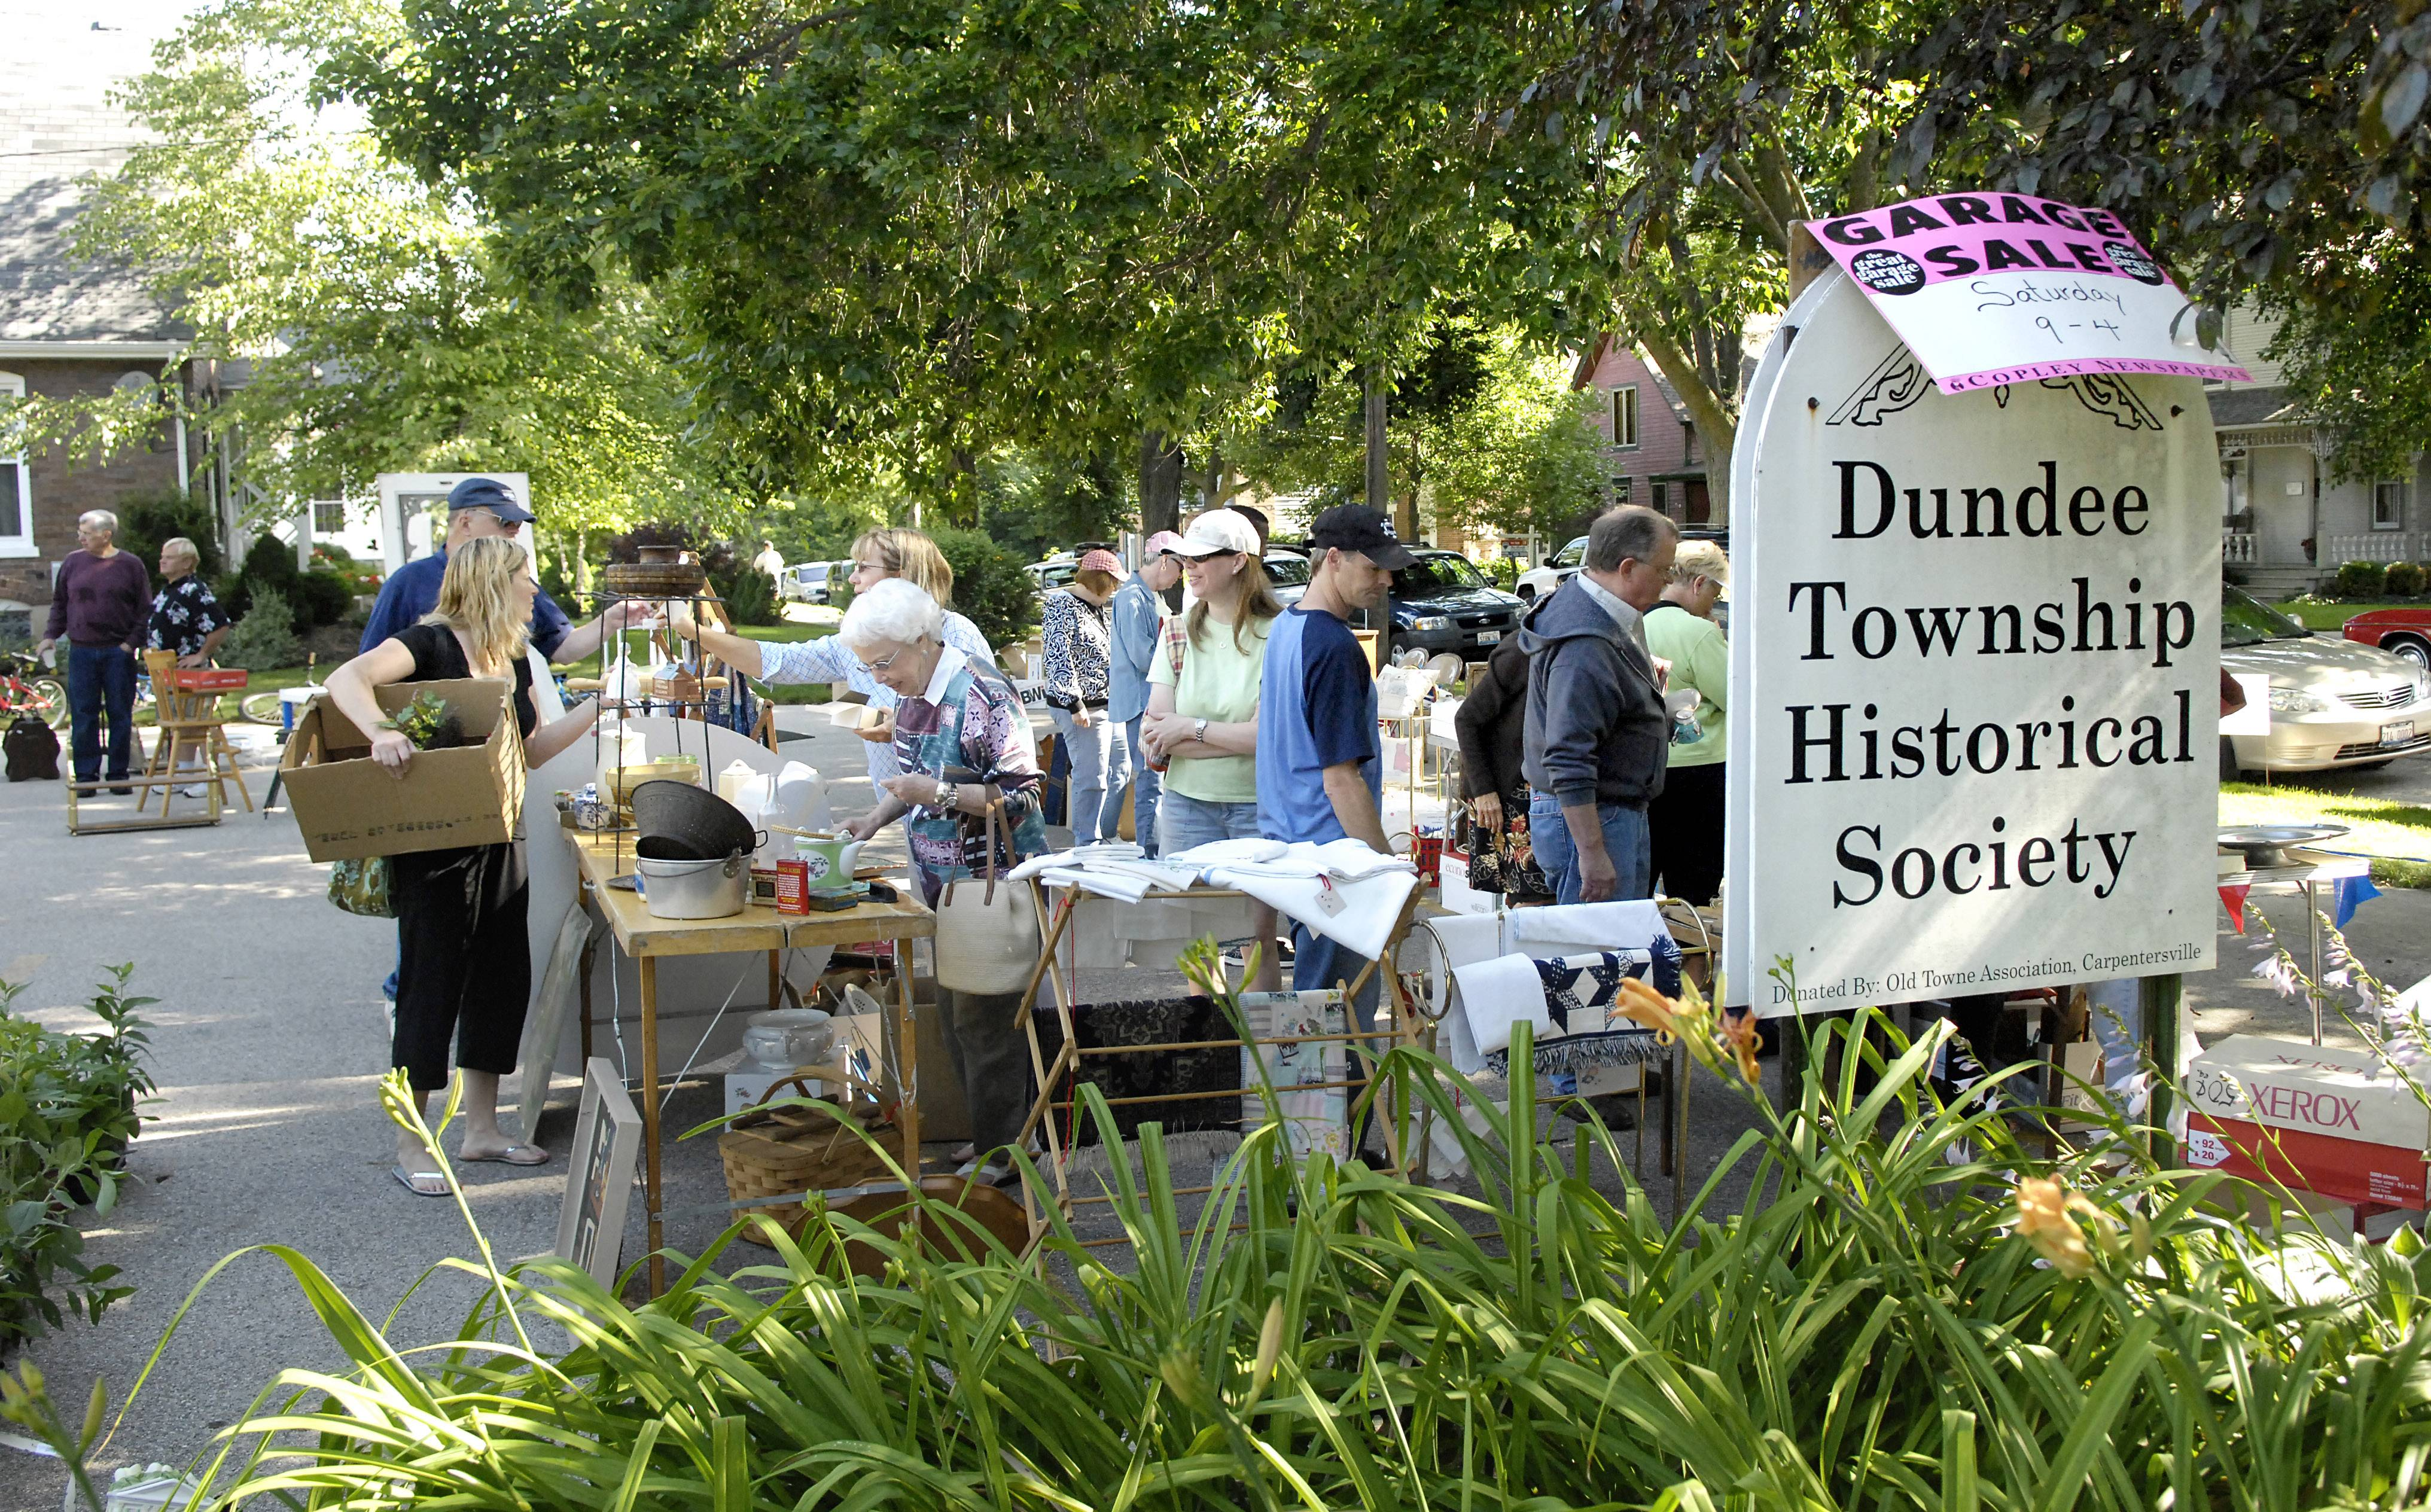 Stop by the Dundee Township Historical Society's annual garage sale on Saturday, Aug. 16, featuring antiques, collectibles, books, vintage linens, furniture, crystal and glassware, toys, Barbie dolls, and more.